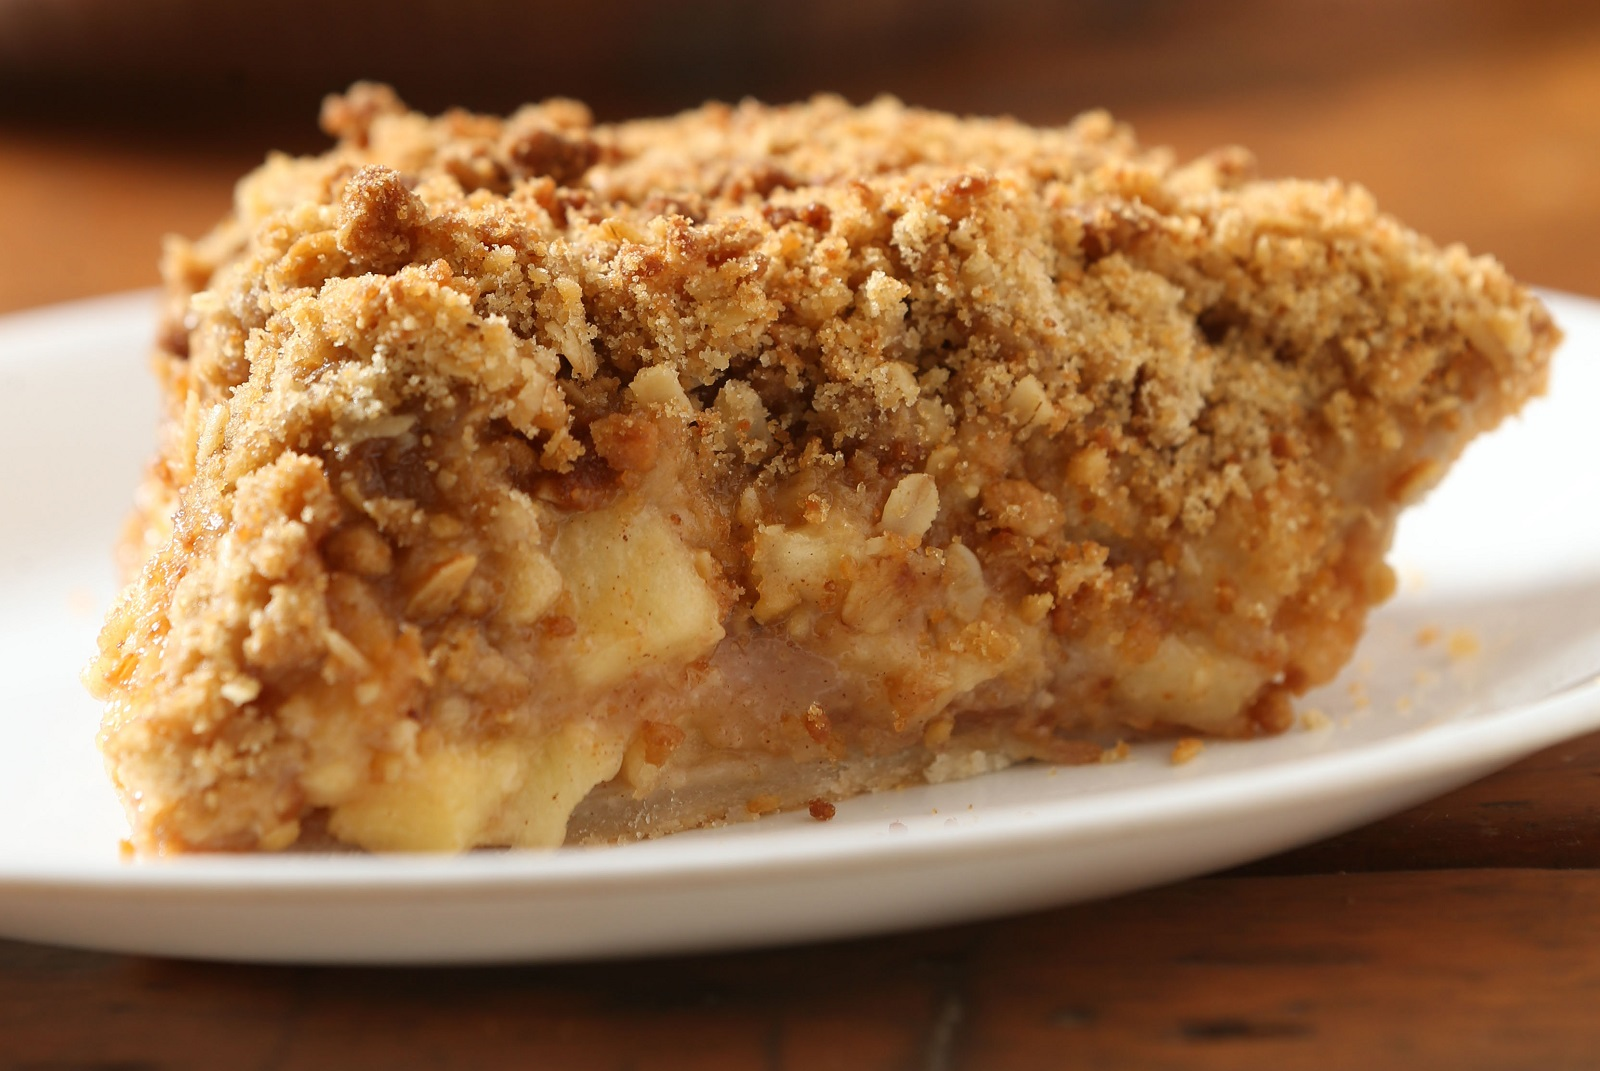 The apple crumb pie from Sanger Farm. (Sharon Cantillon/Buffalo News)